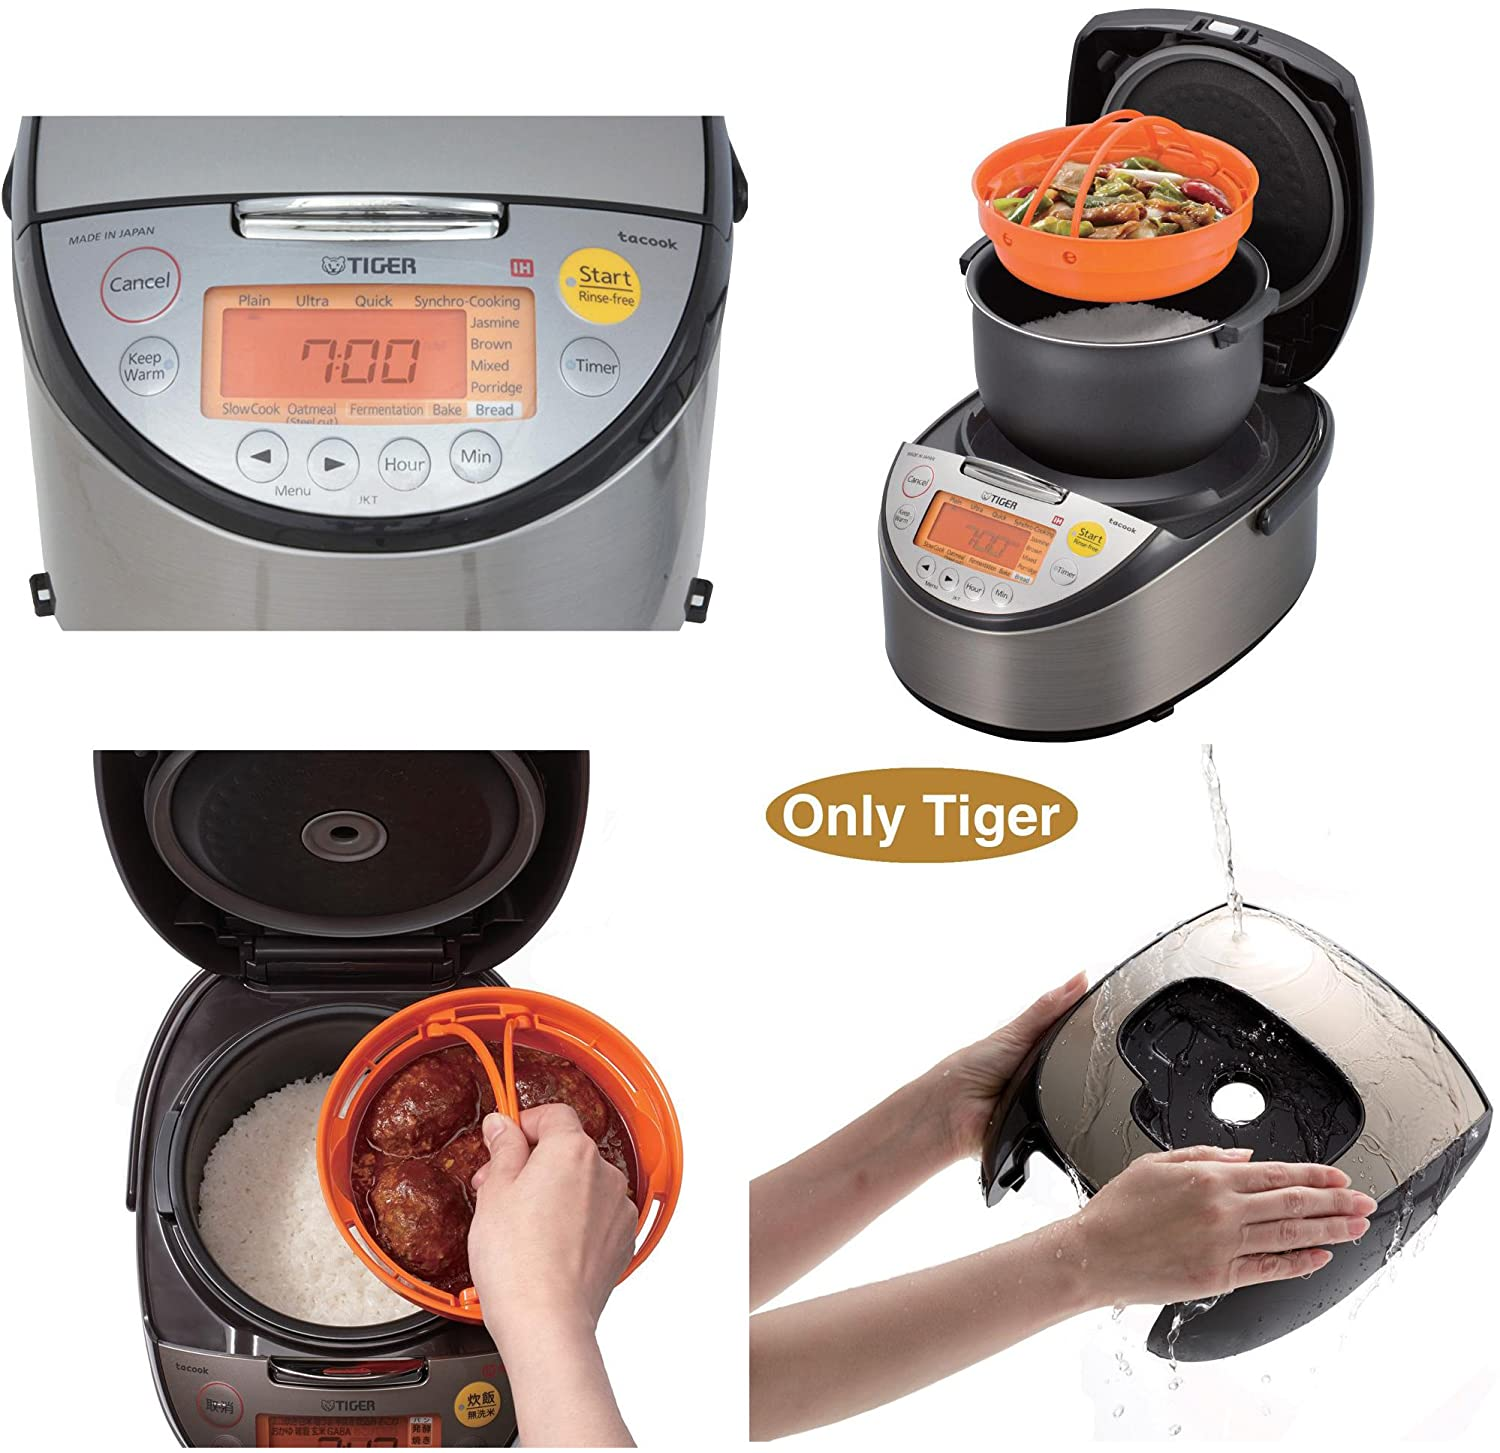 Tiger JKT-S10U-K IH Rice Cooker with Slow Cooking and Bread Making Function Stainless Steel Black 5.5-Cup